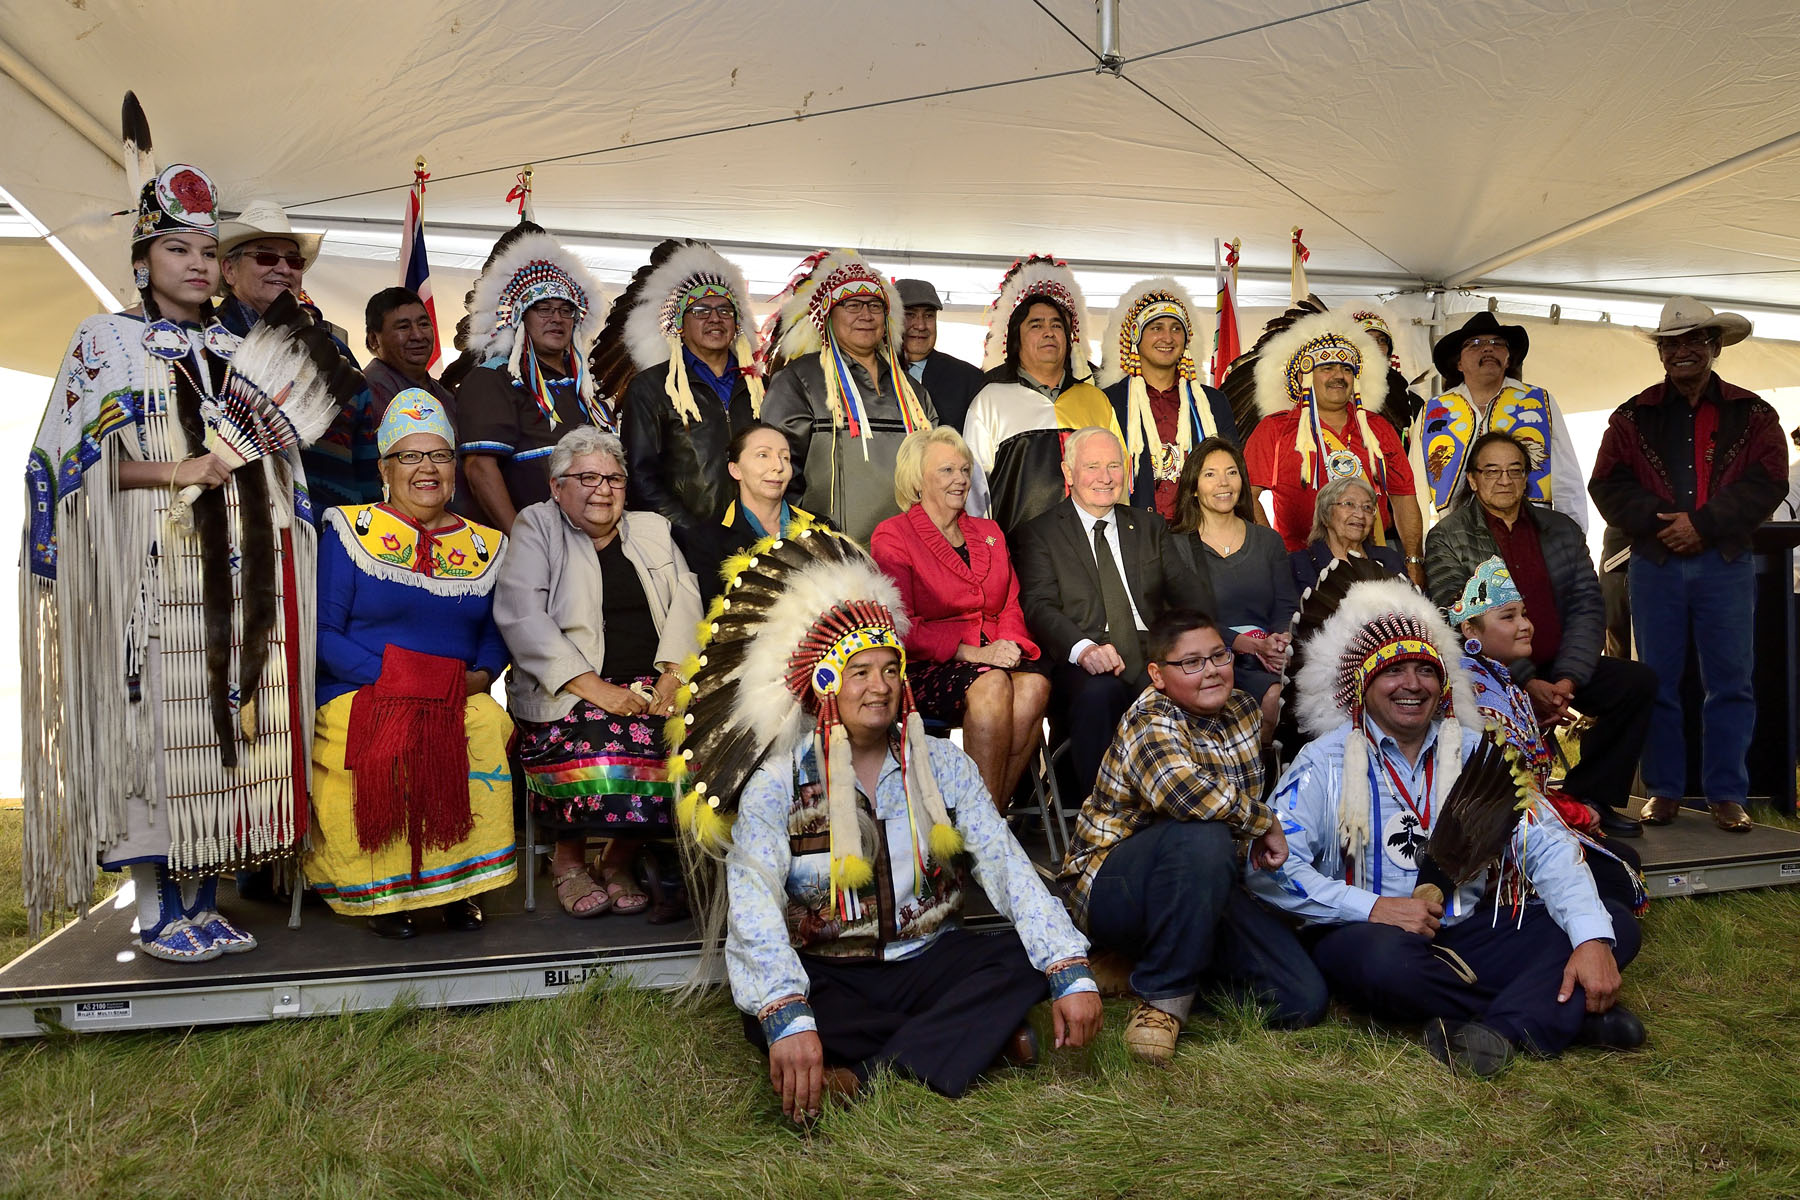 At the end of the ceremony, a group picture was taken with His Excellency, Her Honour, Chief of the Treaty No. 4 Executive Council, National Chief of Assembly of First Nations and with chiefs of Territory No 4.